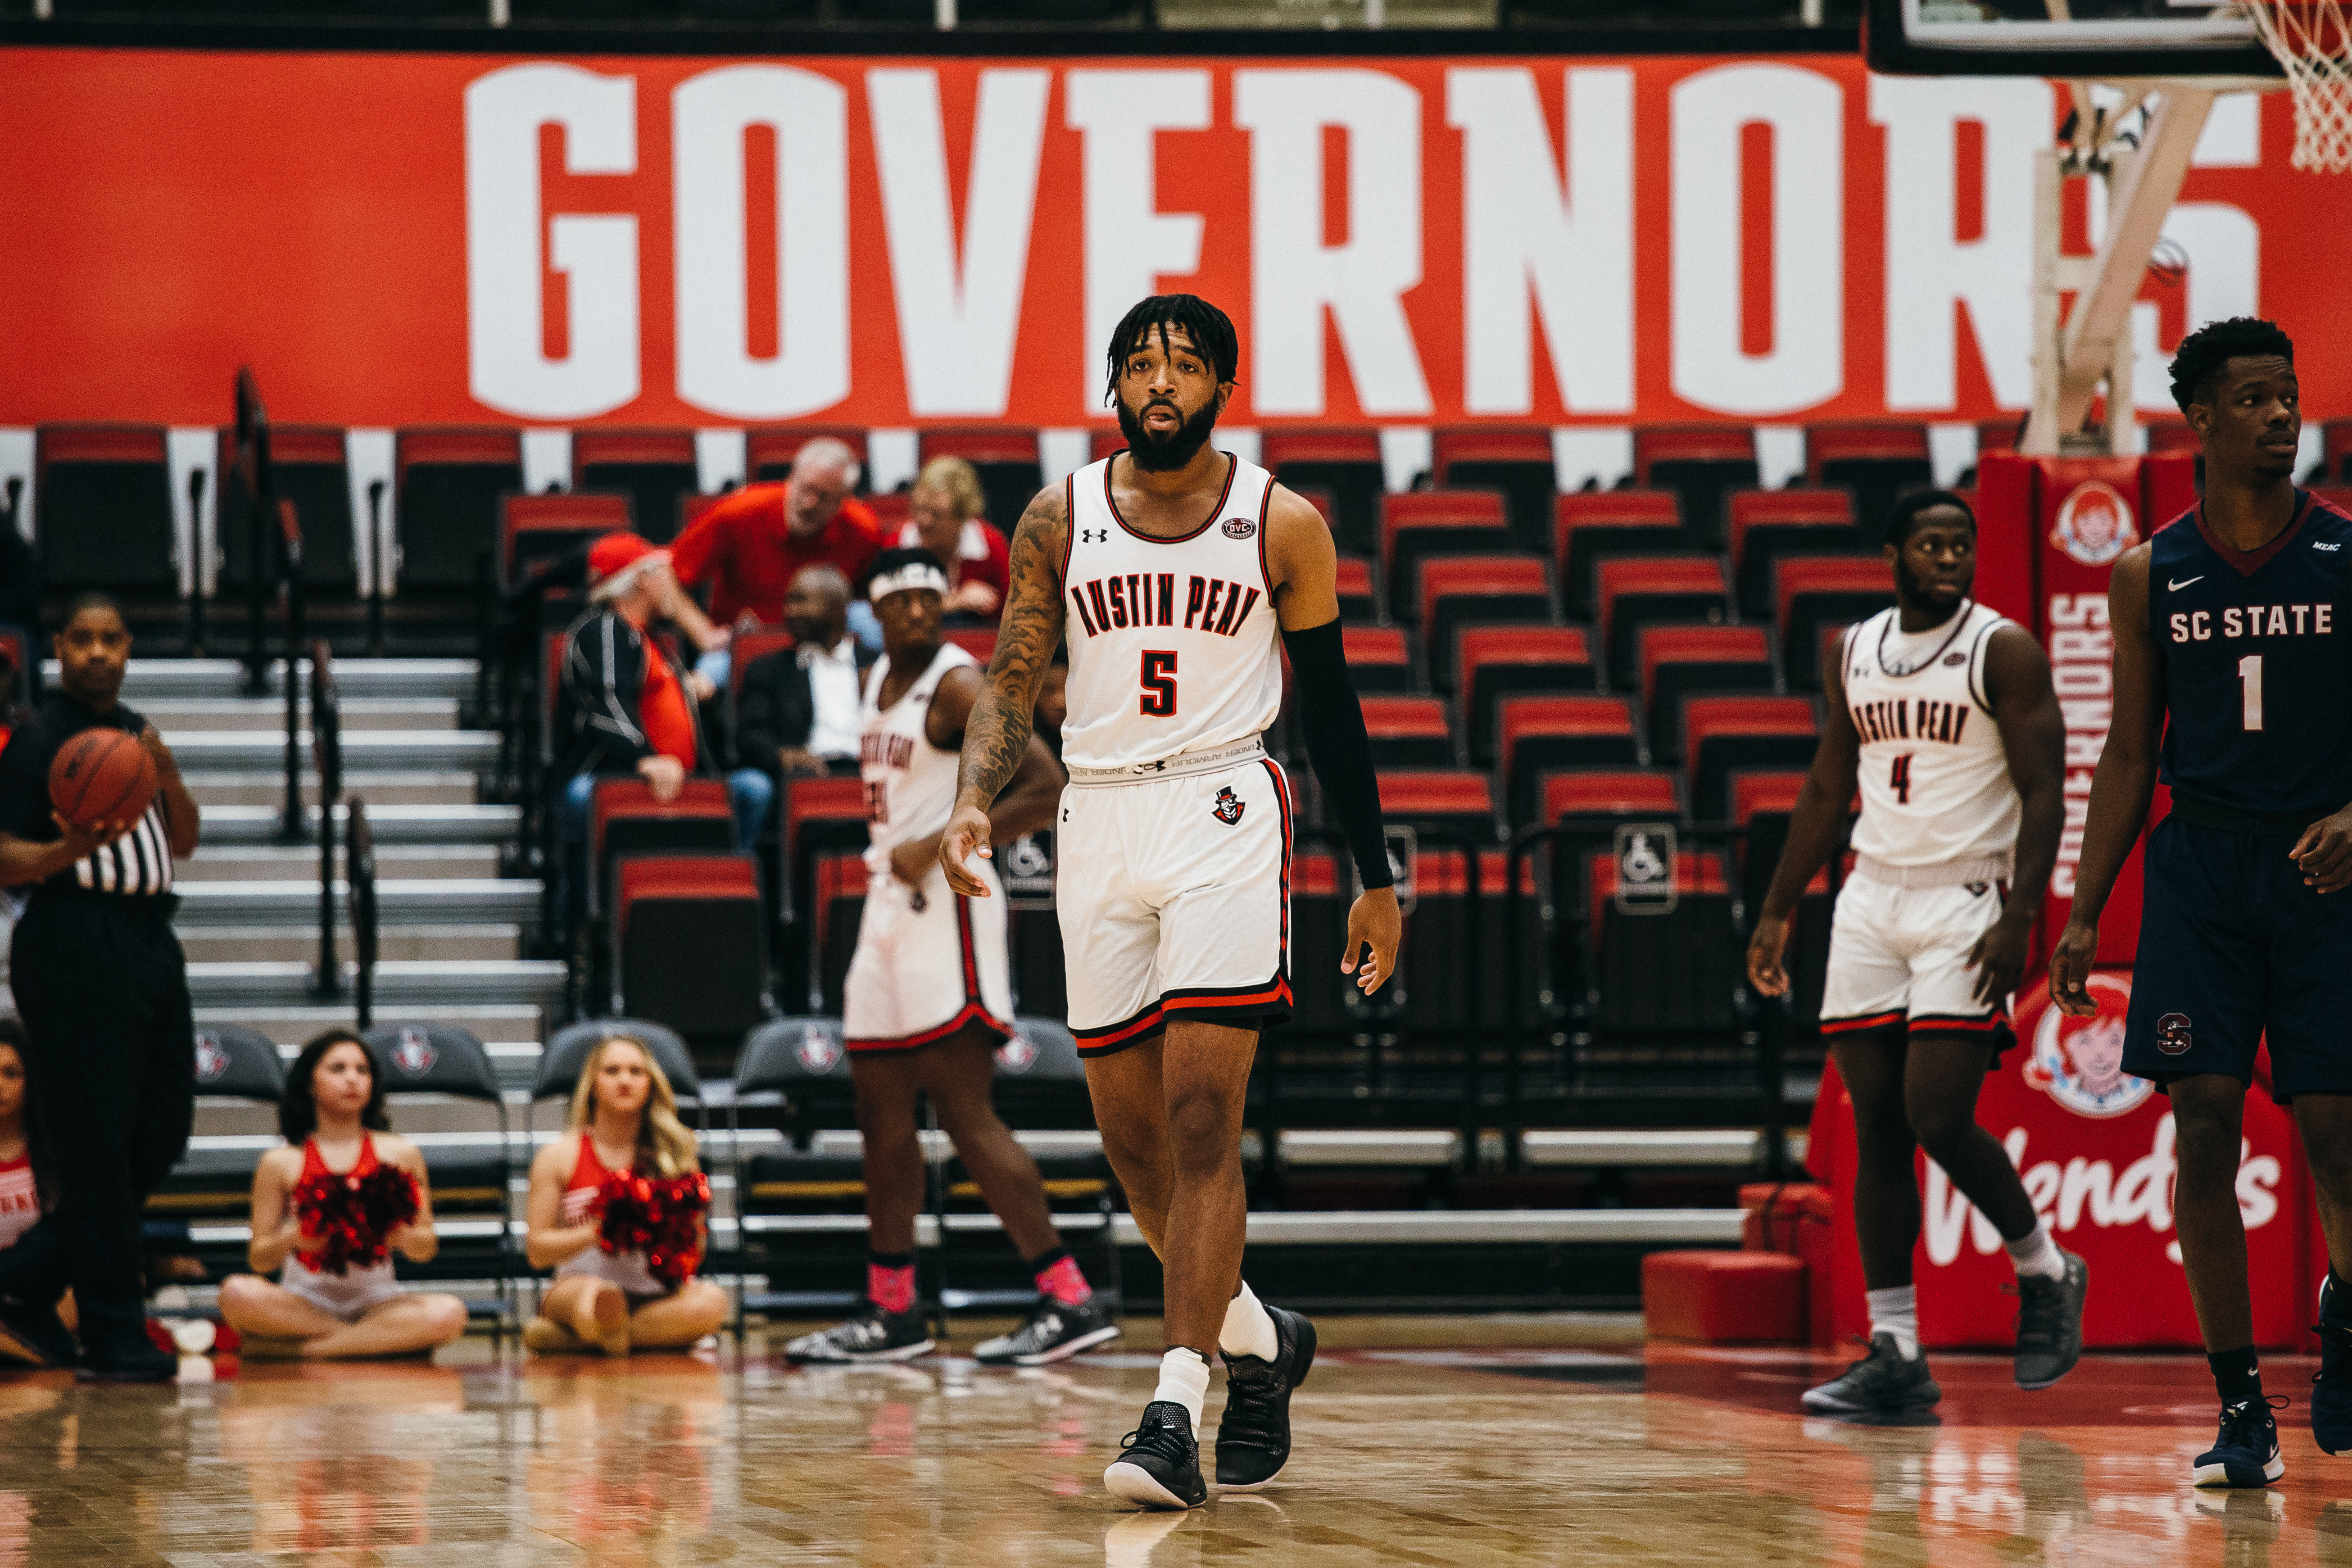 Jordyn Adams walks off the floor during a game against SC State. | THE ALL STATE ARCHIVES